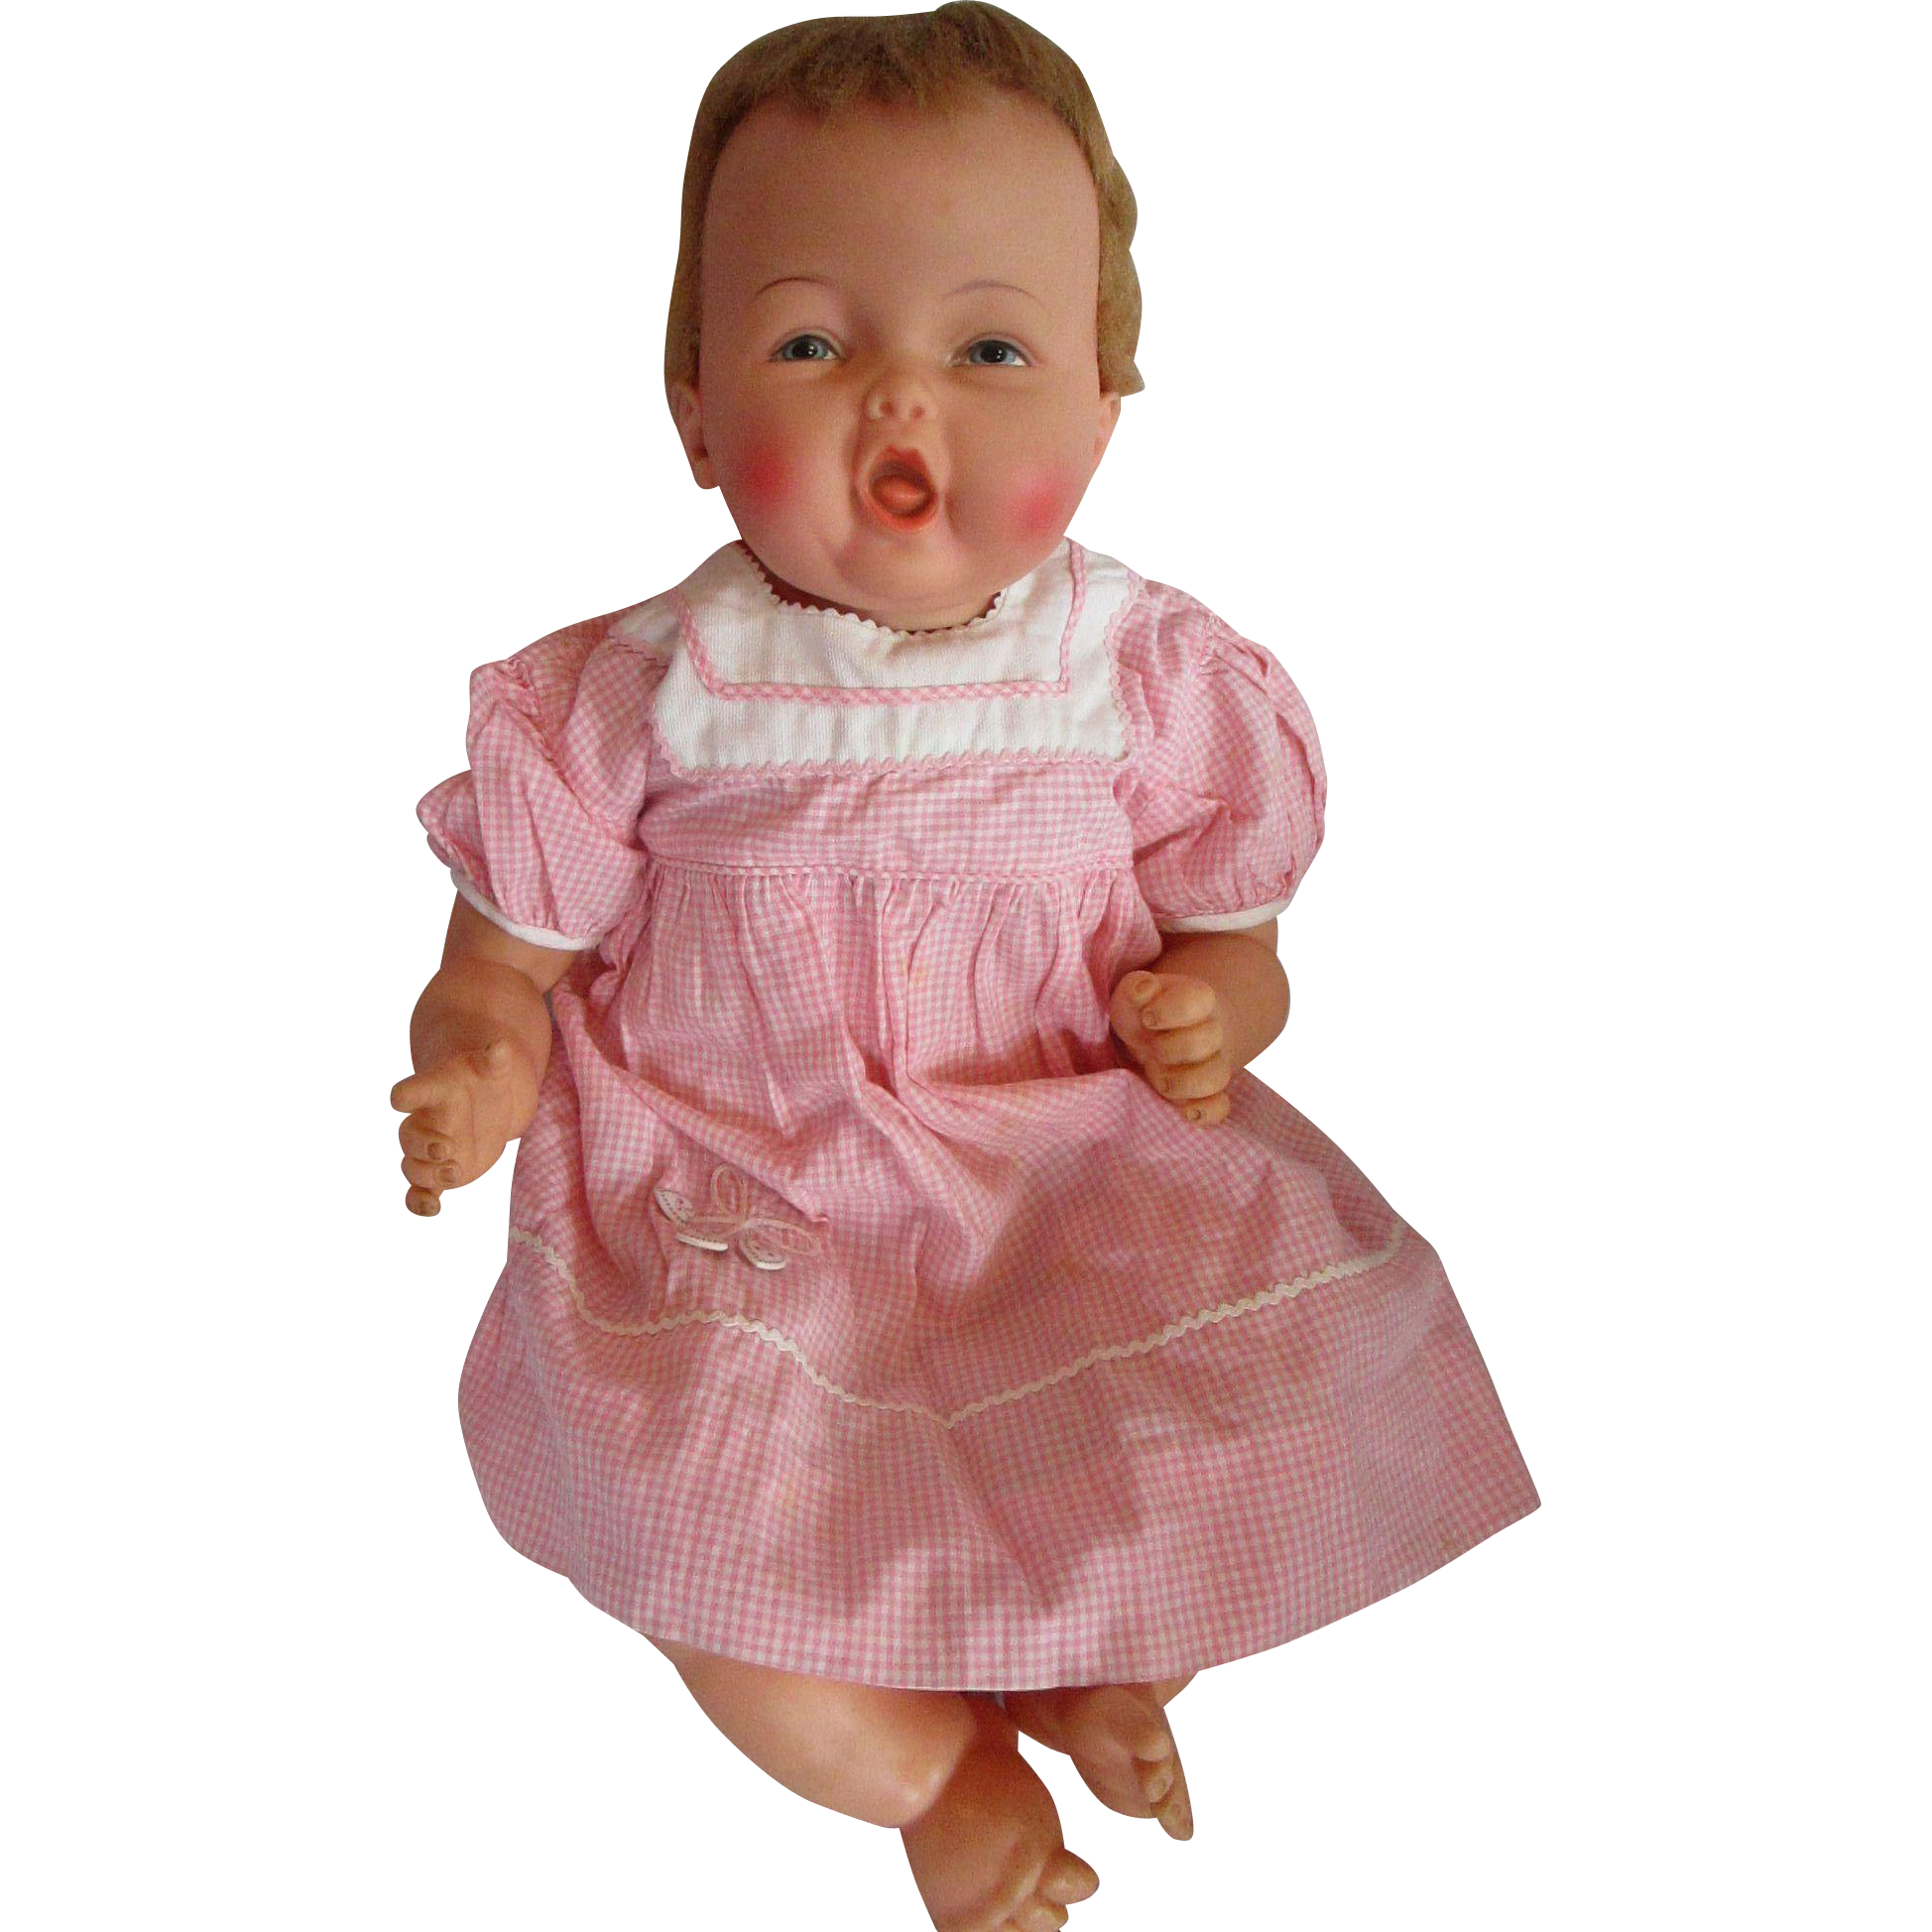 Ideal 1962 63 Rare 20 Bouncing Baby Coos Doll Still Cries Adorable Dolls Adorable Baby Dolls